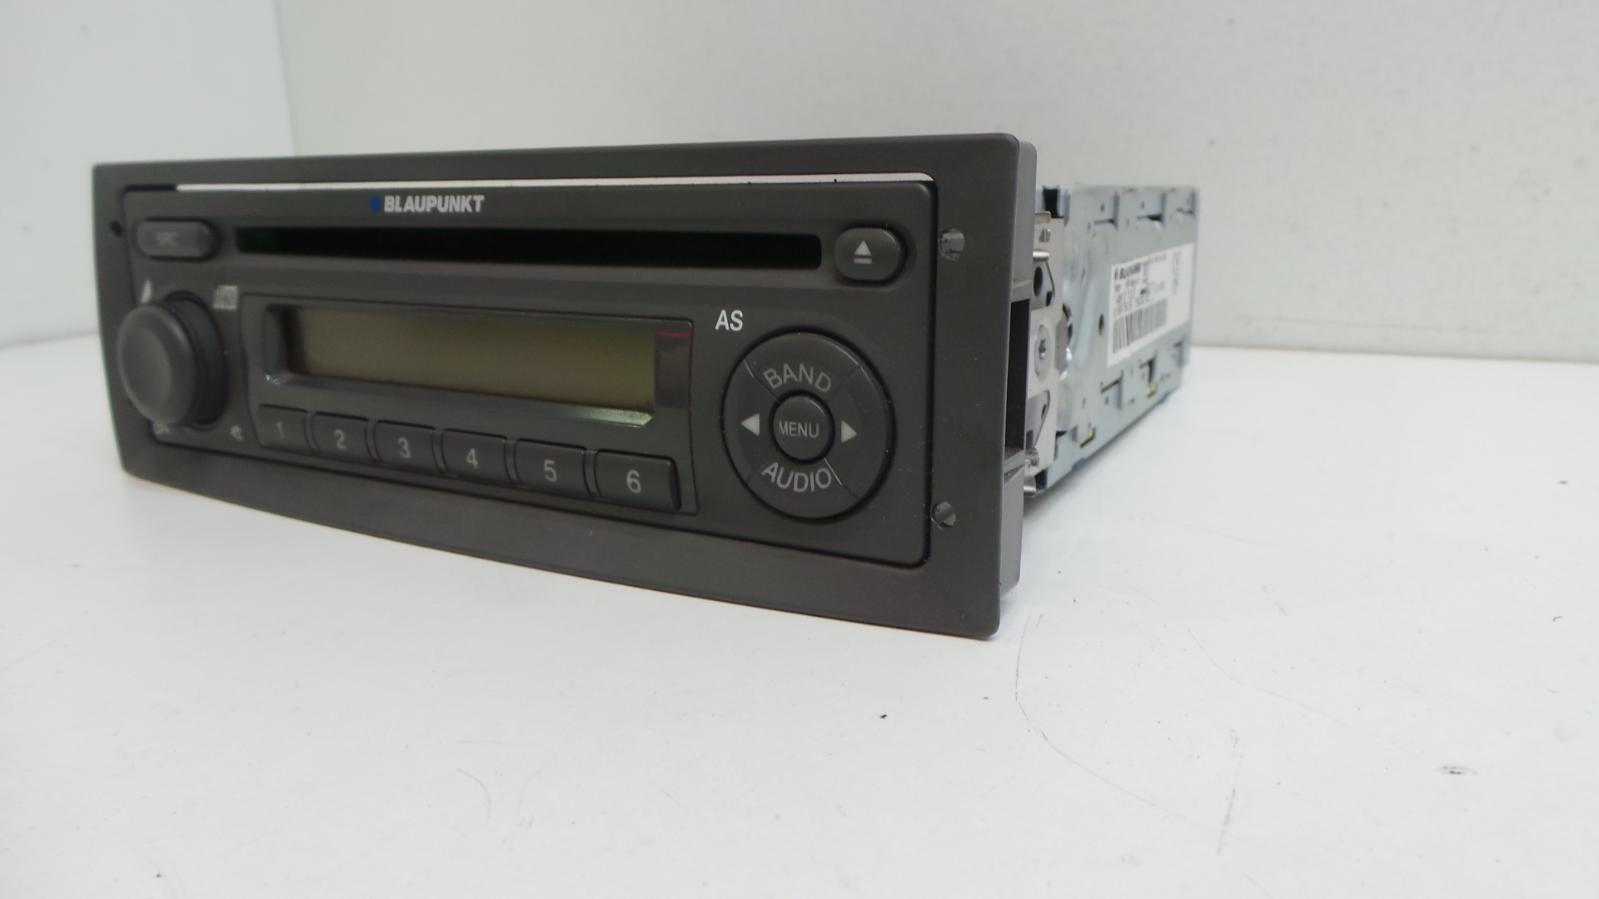 2009 fiat punto mk2 blaupunkt cd player radio stereo. Black Bedroom Furniture Sets. Home Design Ideas